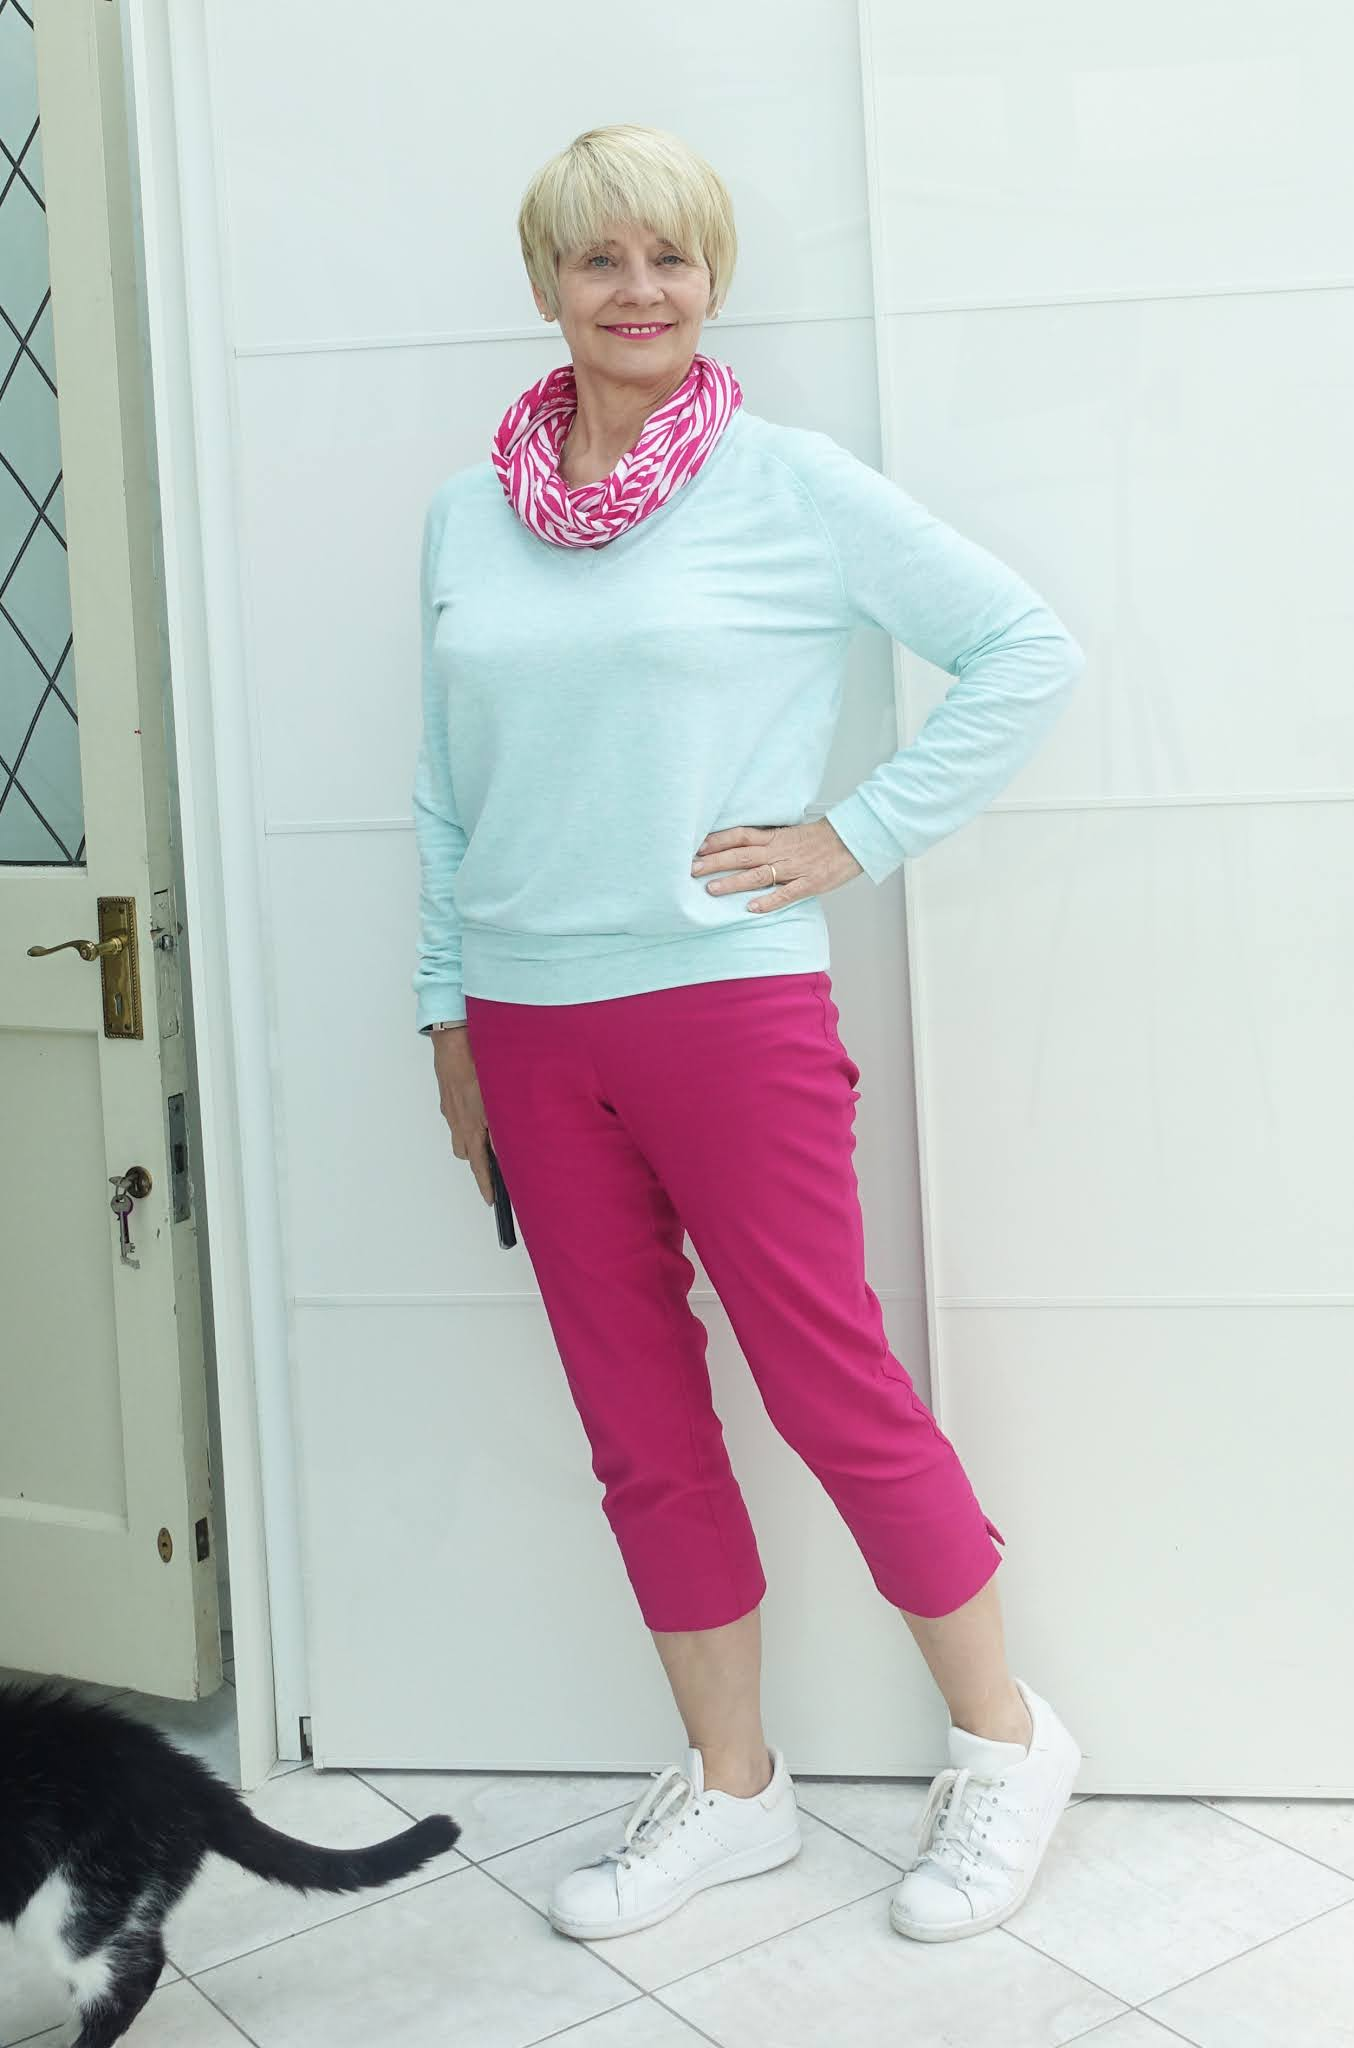 Look smart and crisp in casual wear. Gail Hanlon from Is This Mutton in bright pink cropped trousers from Roman and Mint supersoft sweatshirt from Kettlewell with fuchsia ice scarf